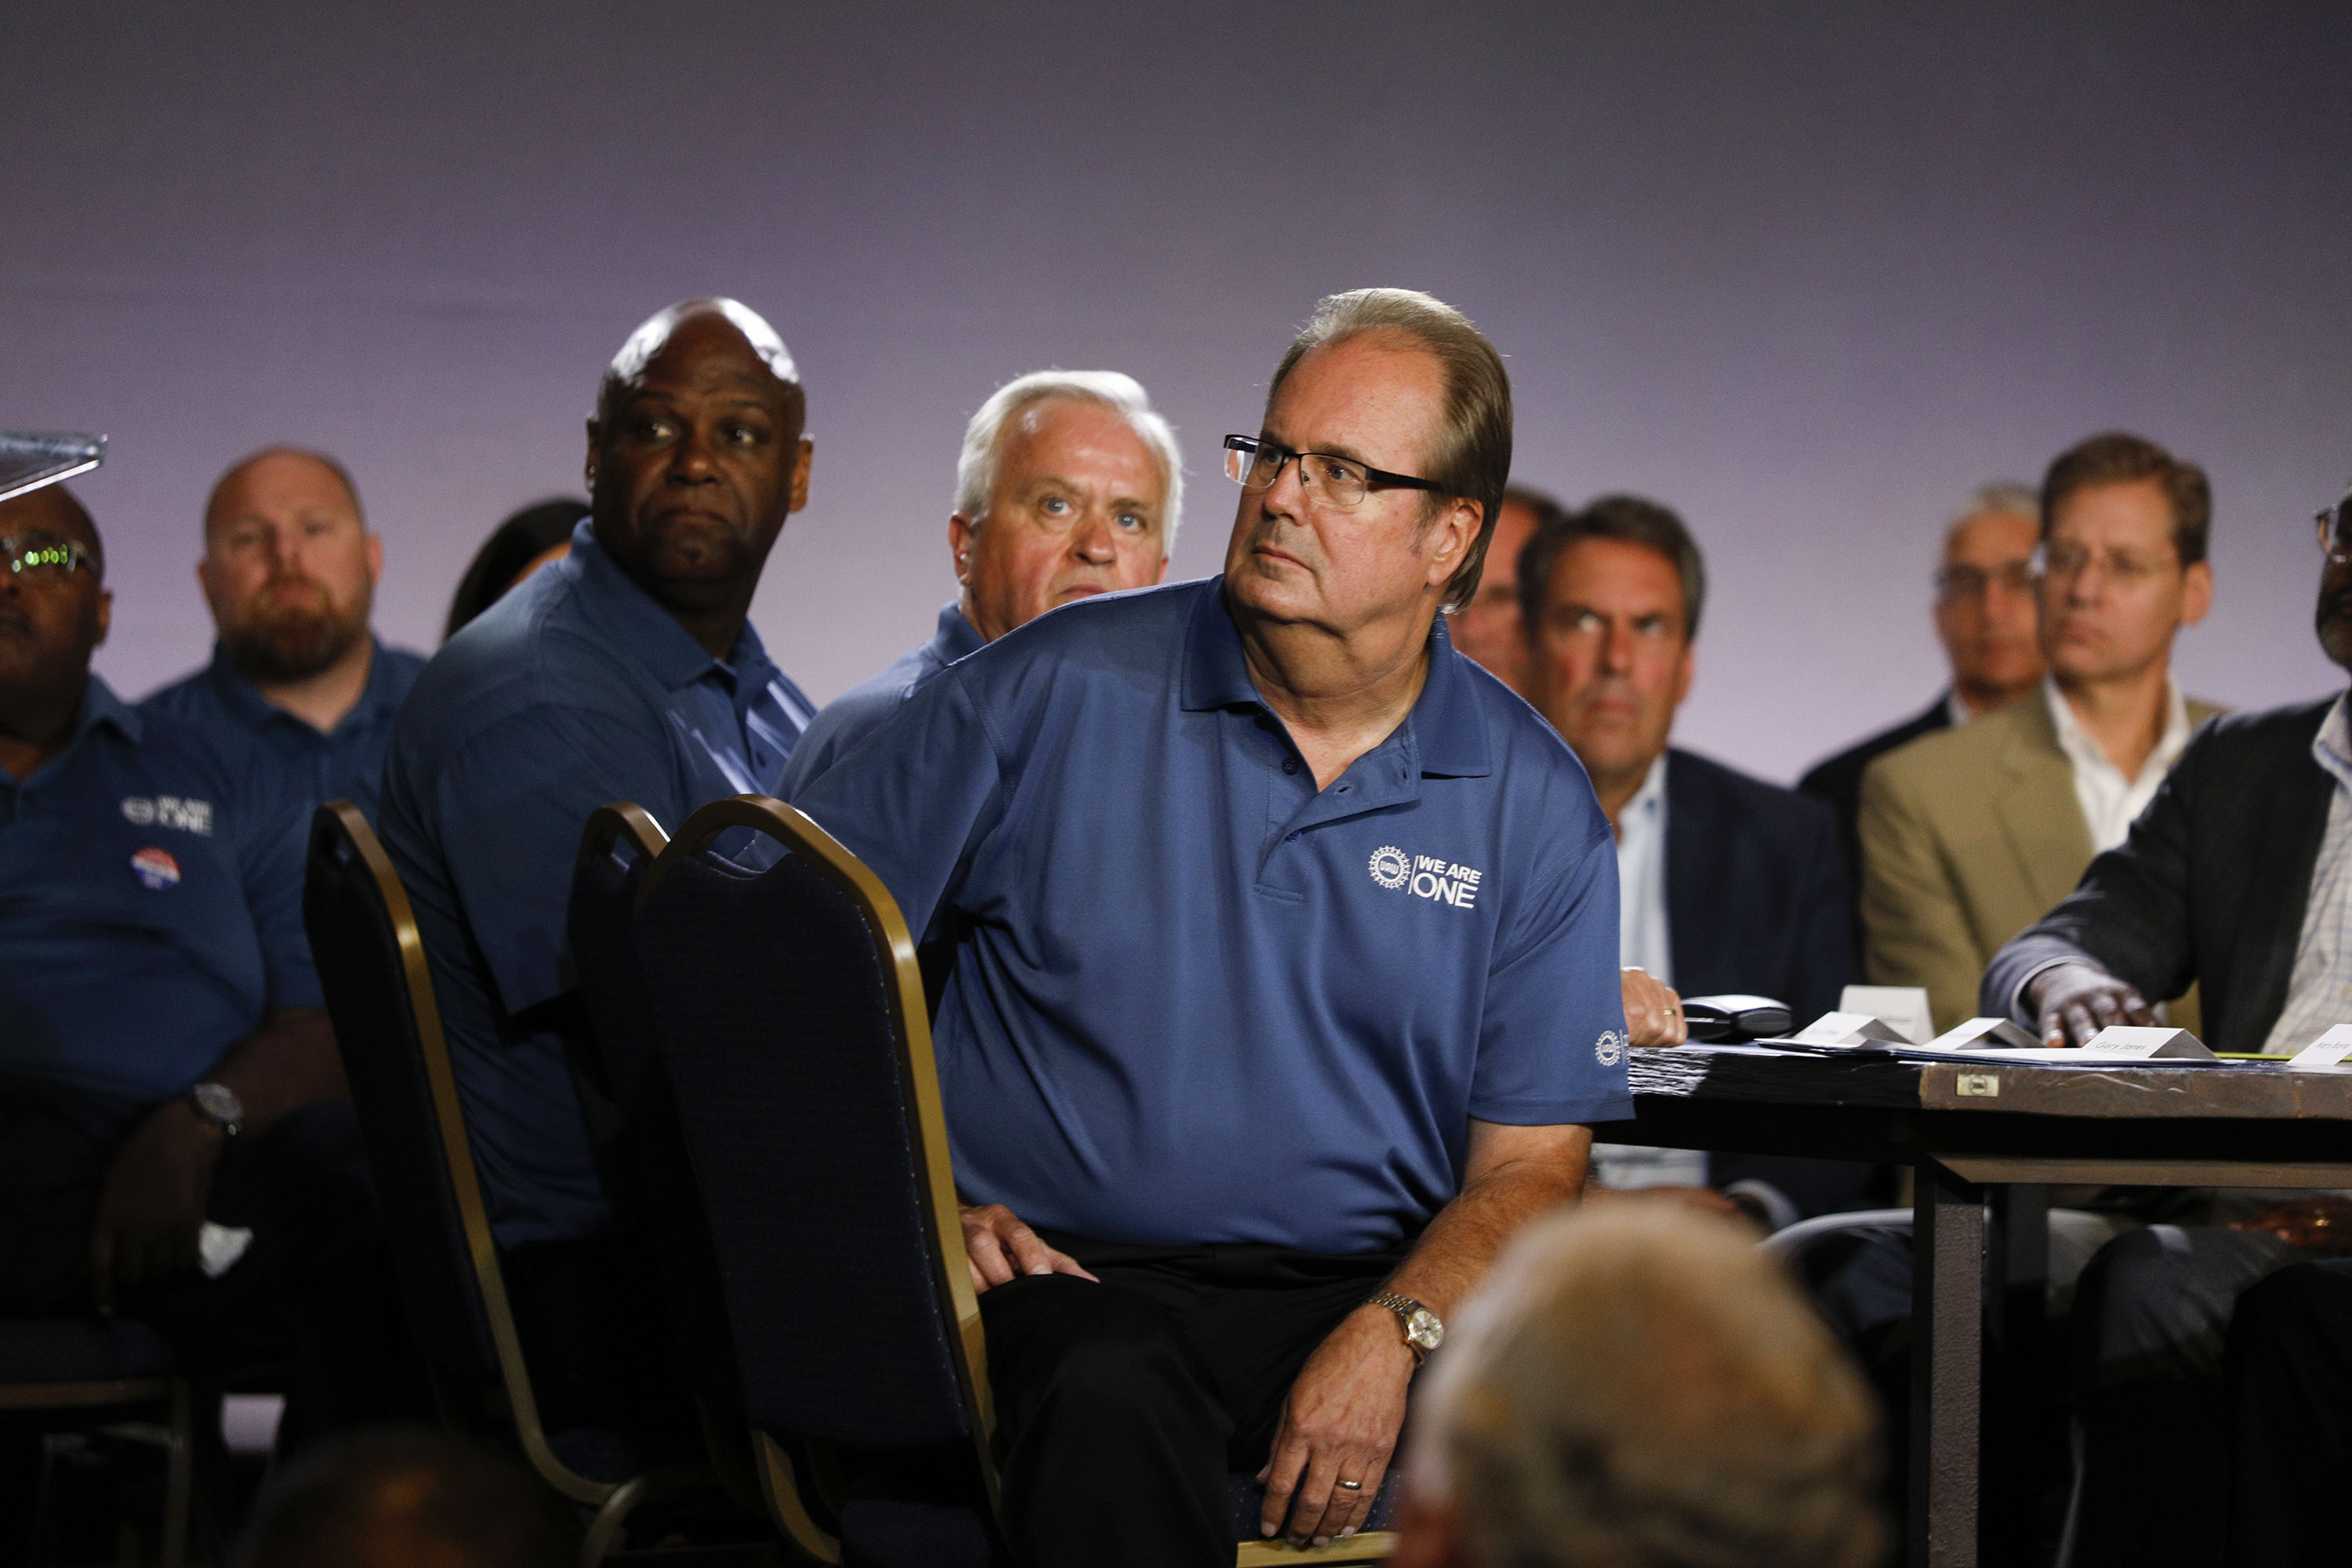 DETROIT, MI - JULY 16: United Auto Workers President Gary Jones listens to General Motors Chairman and CEO Mary Barra speak as they open the 2019 GM-UAW contract talks on July 16, 2019 in Detroit, Michigan. With its increasing investment in electric vehicles, GM is faced with the challenge of transitioning its employees to work with new technologies. (Photo by Bill Pugliano/Getty Images)